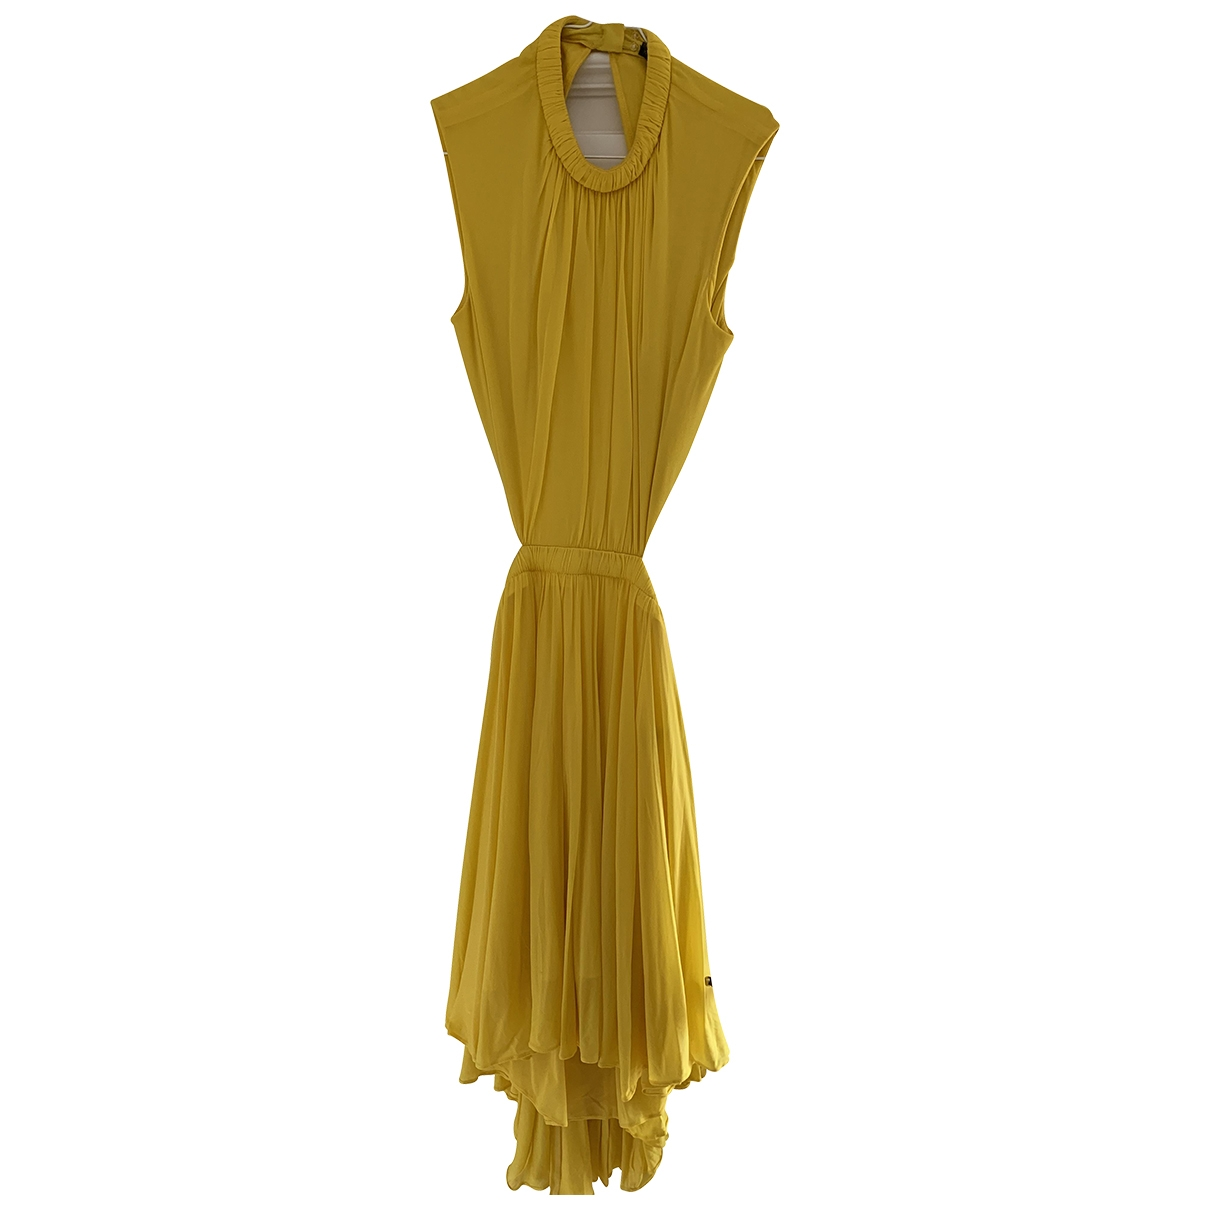 Alexander Mcqueen \N Yellow Silk dress for Women 38 IT